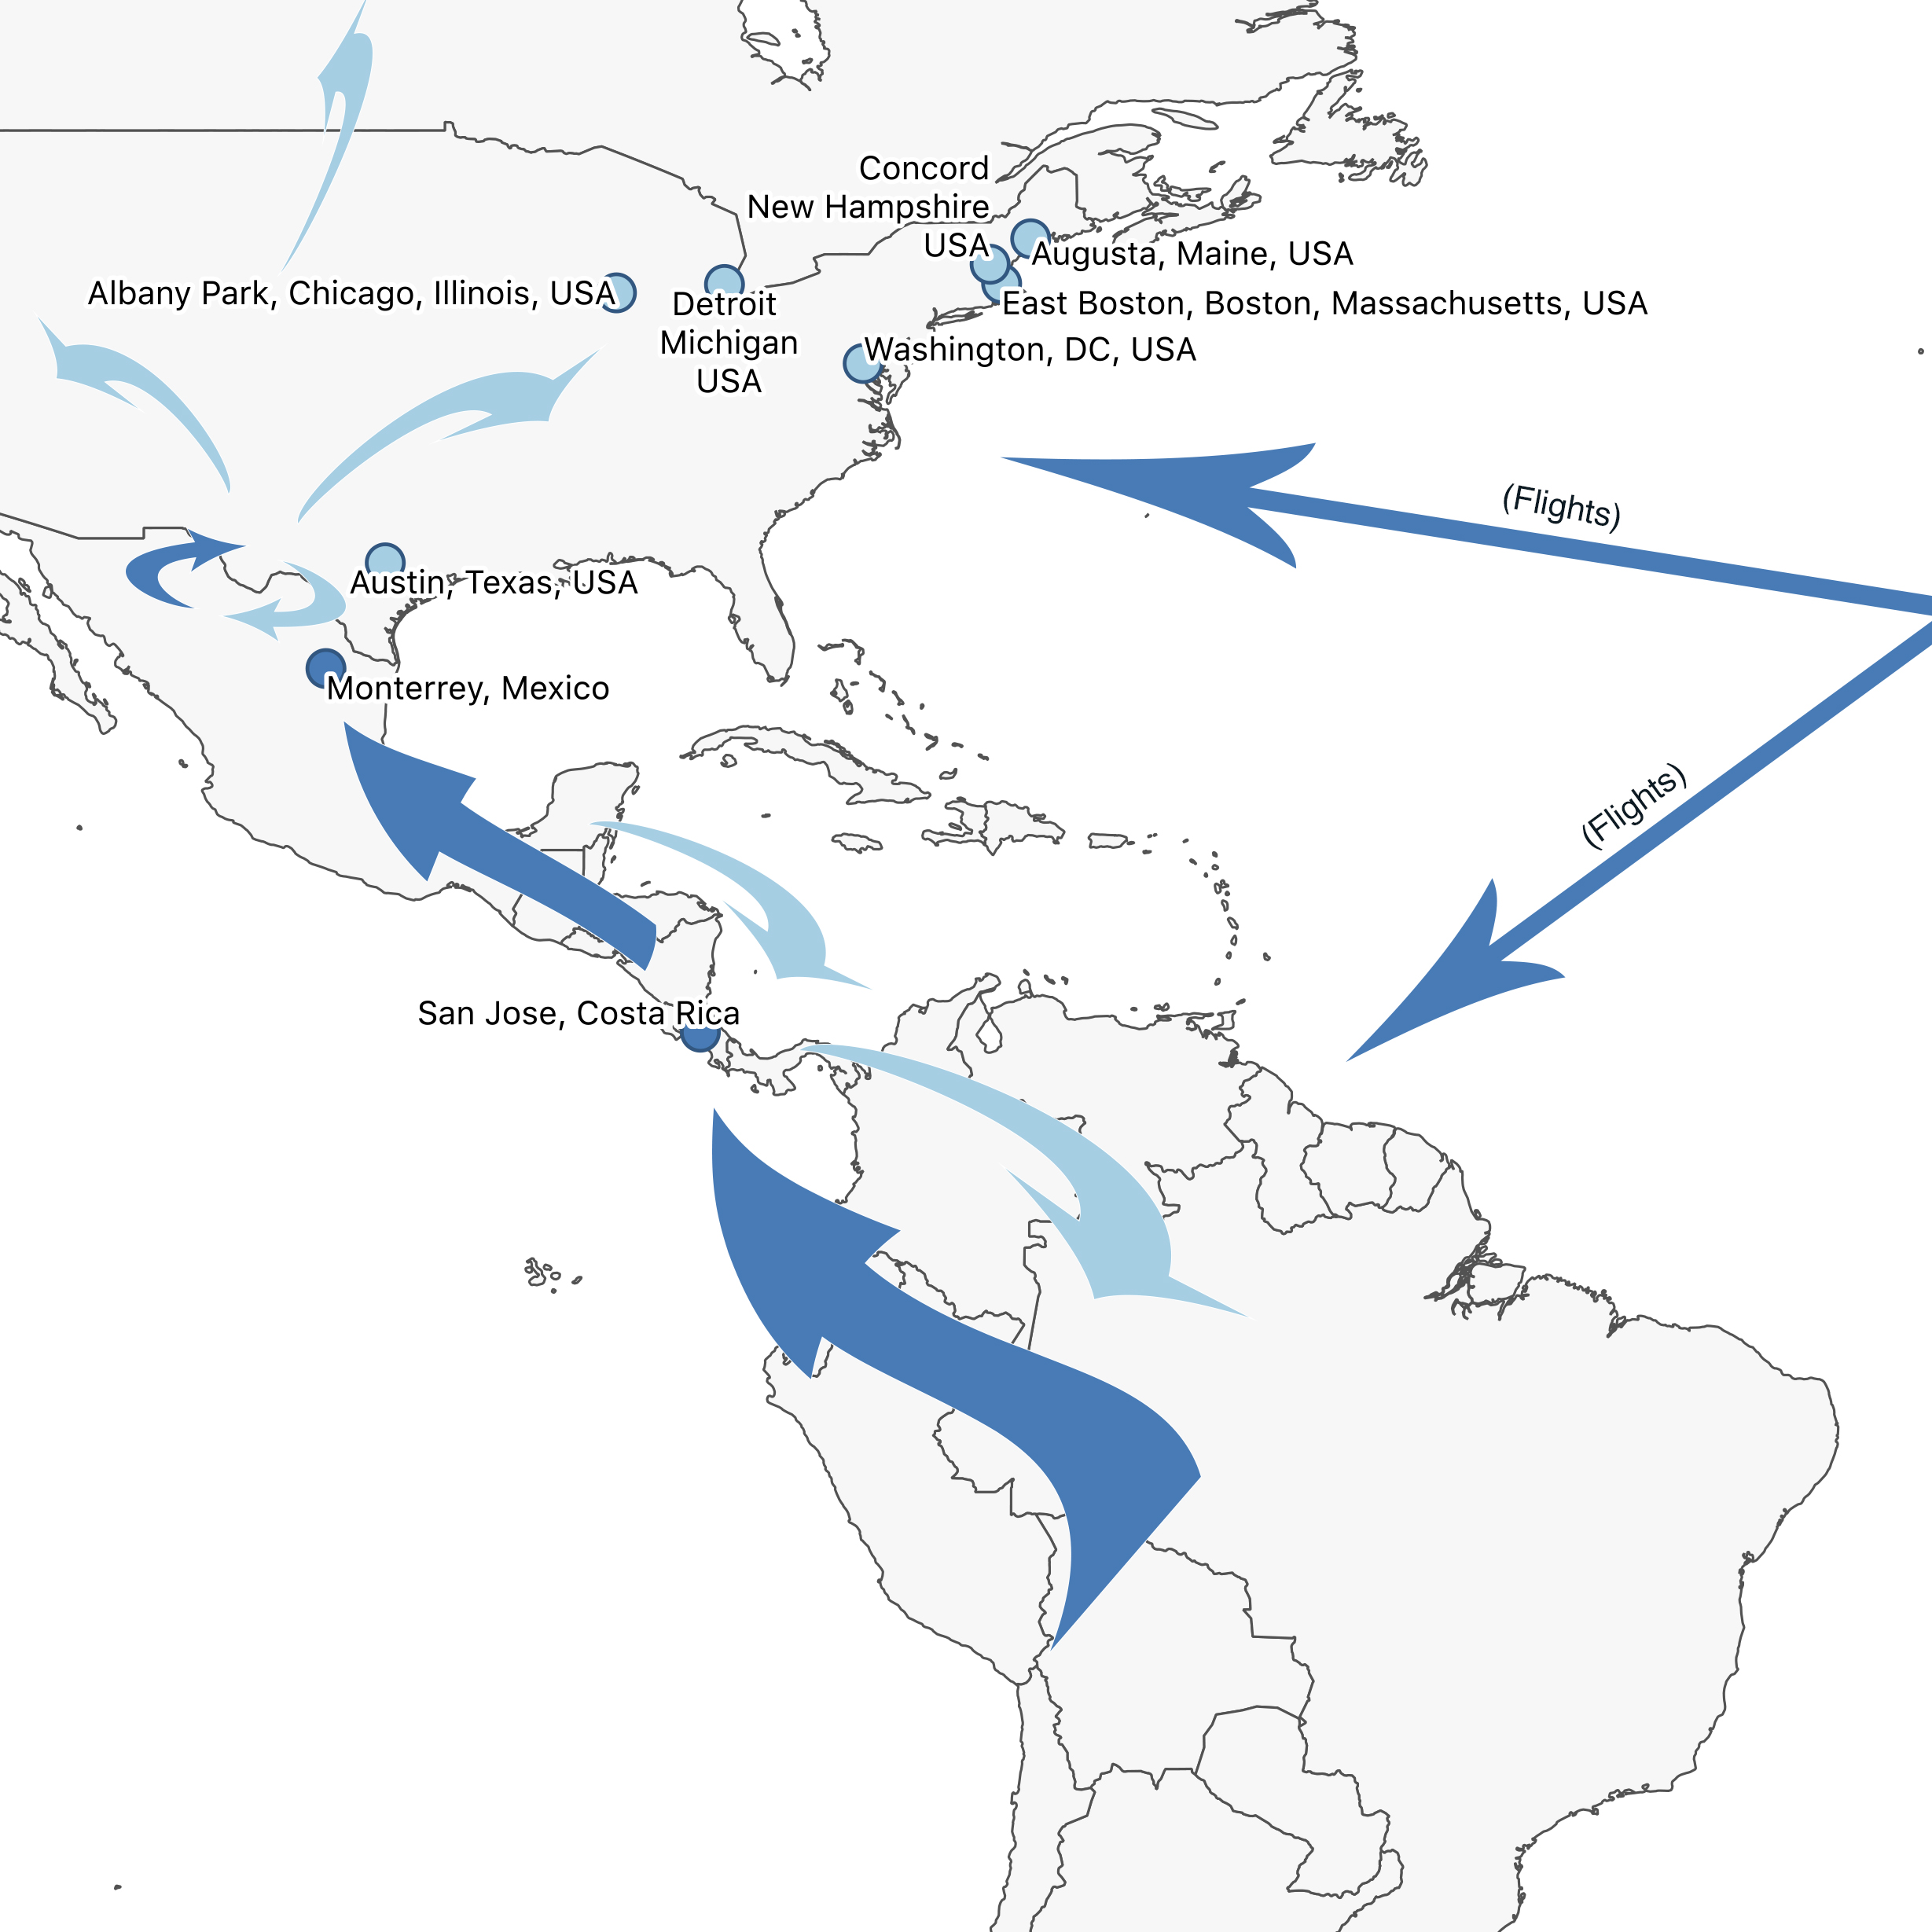 """Chicago is a historic """"gateway city"""" where migrants have settled in the United States for generations, but the role of Chicago and the US as a destination is shifting with large numbers of circular return migrants throughout the Americas. Click the map to learn more about forced migration in the Americas, and to read more RIT cases from the region."""